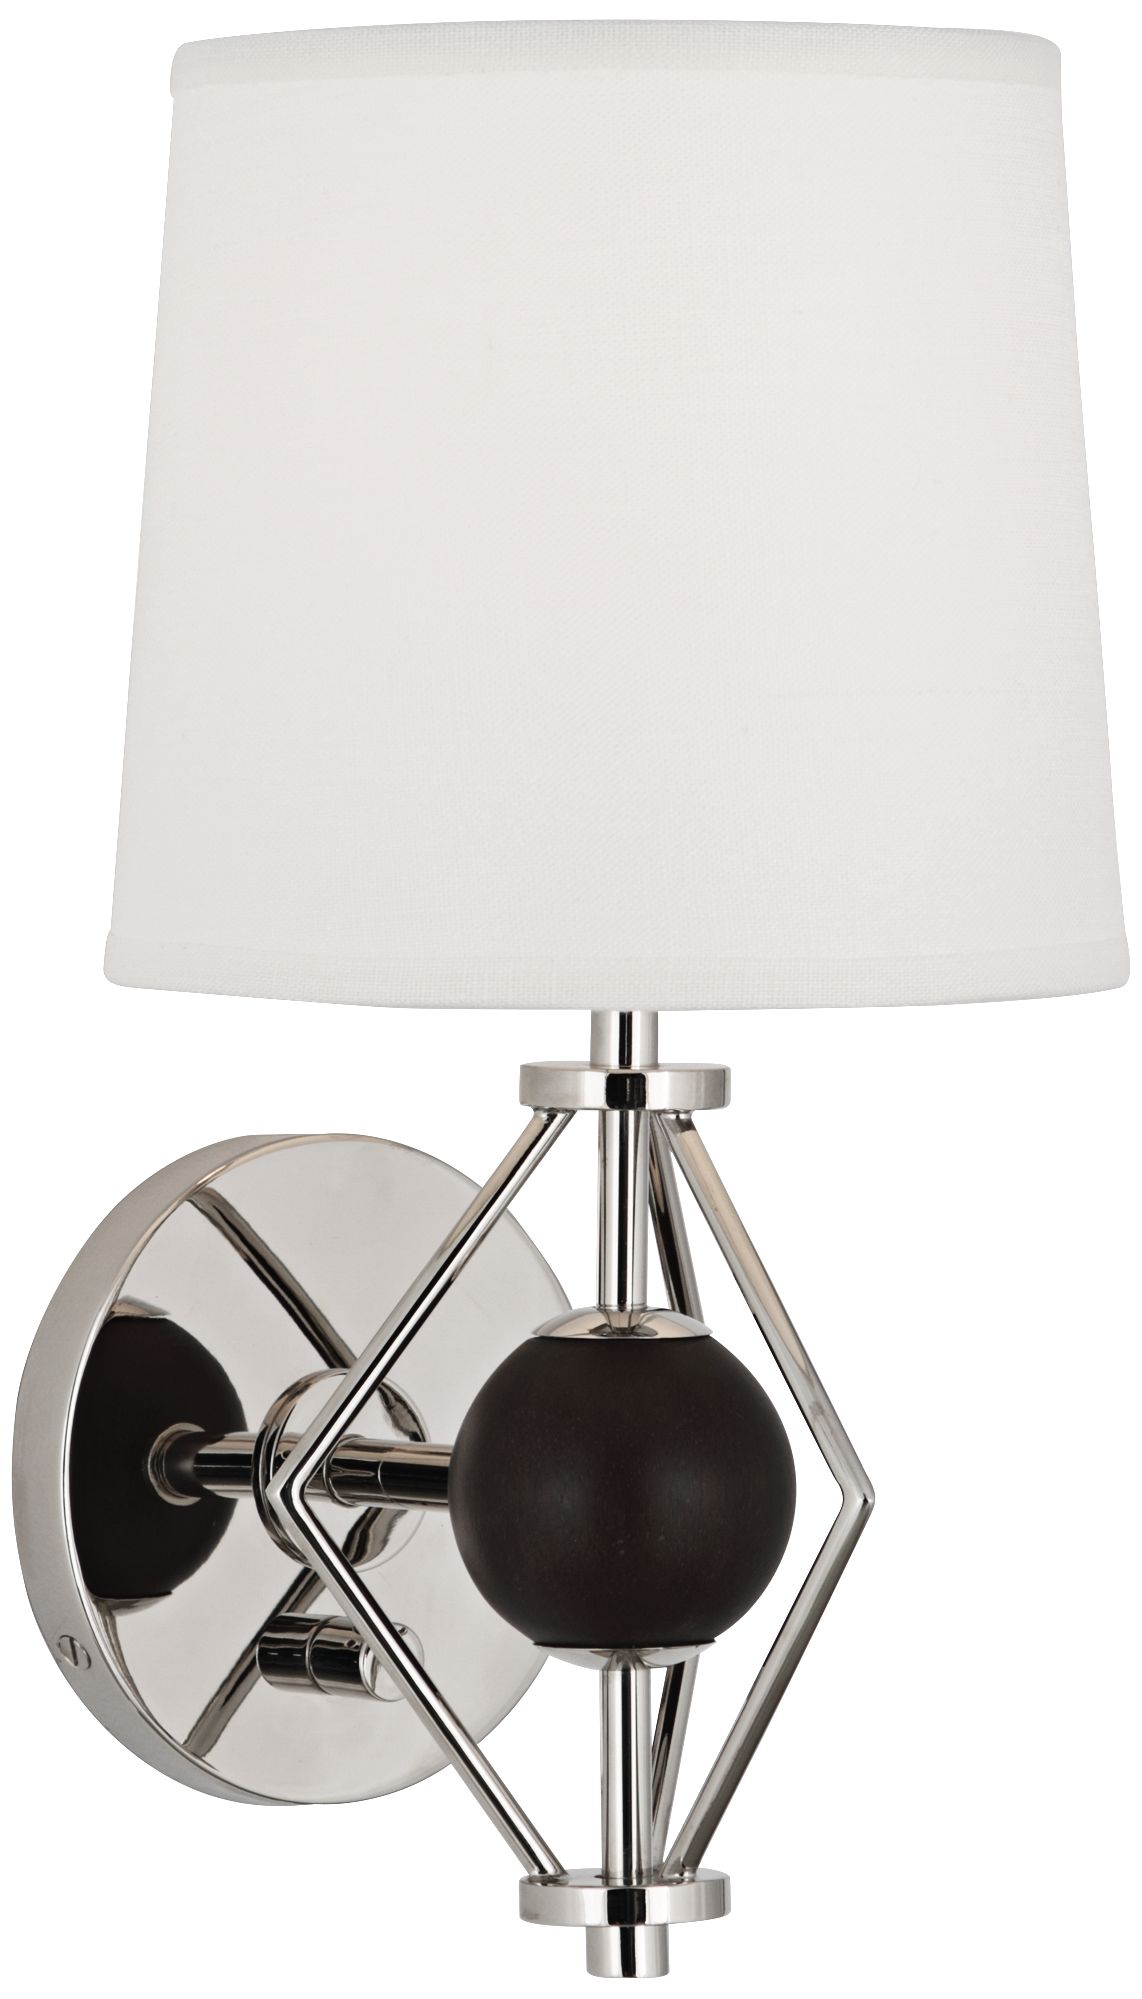 ojai polished nickel wall sconce by jonathan adler